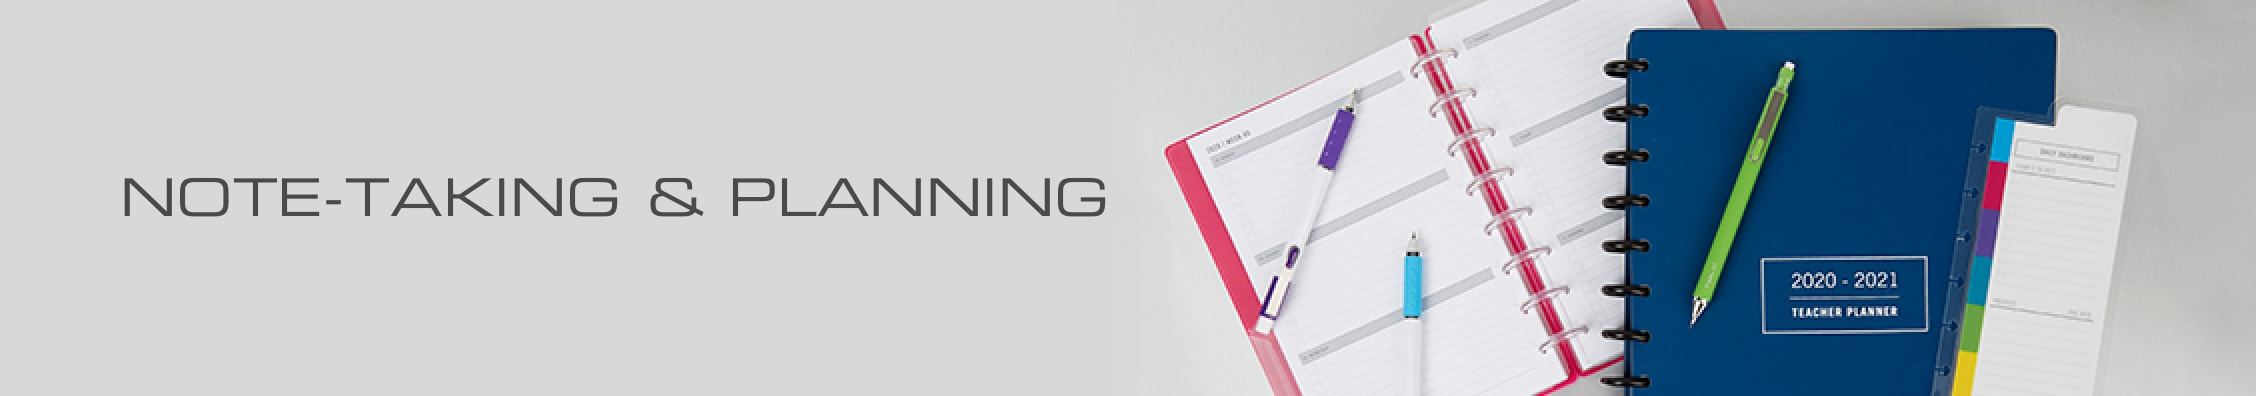 Note-Taking & Planning